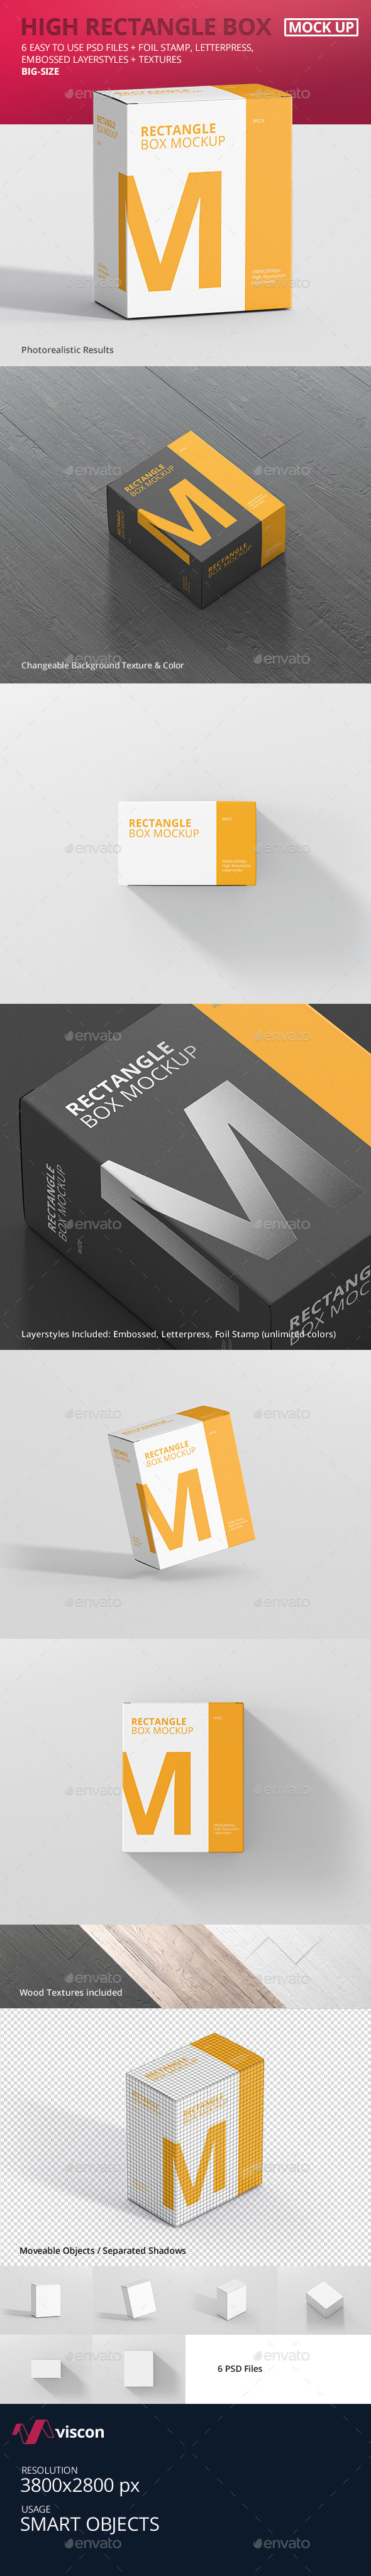 GraphicRiver Box Mockup High Rectangle Big Size 21048673